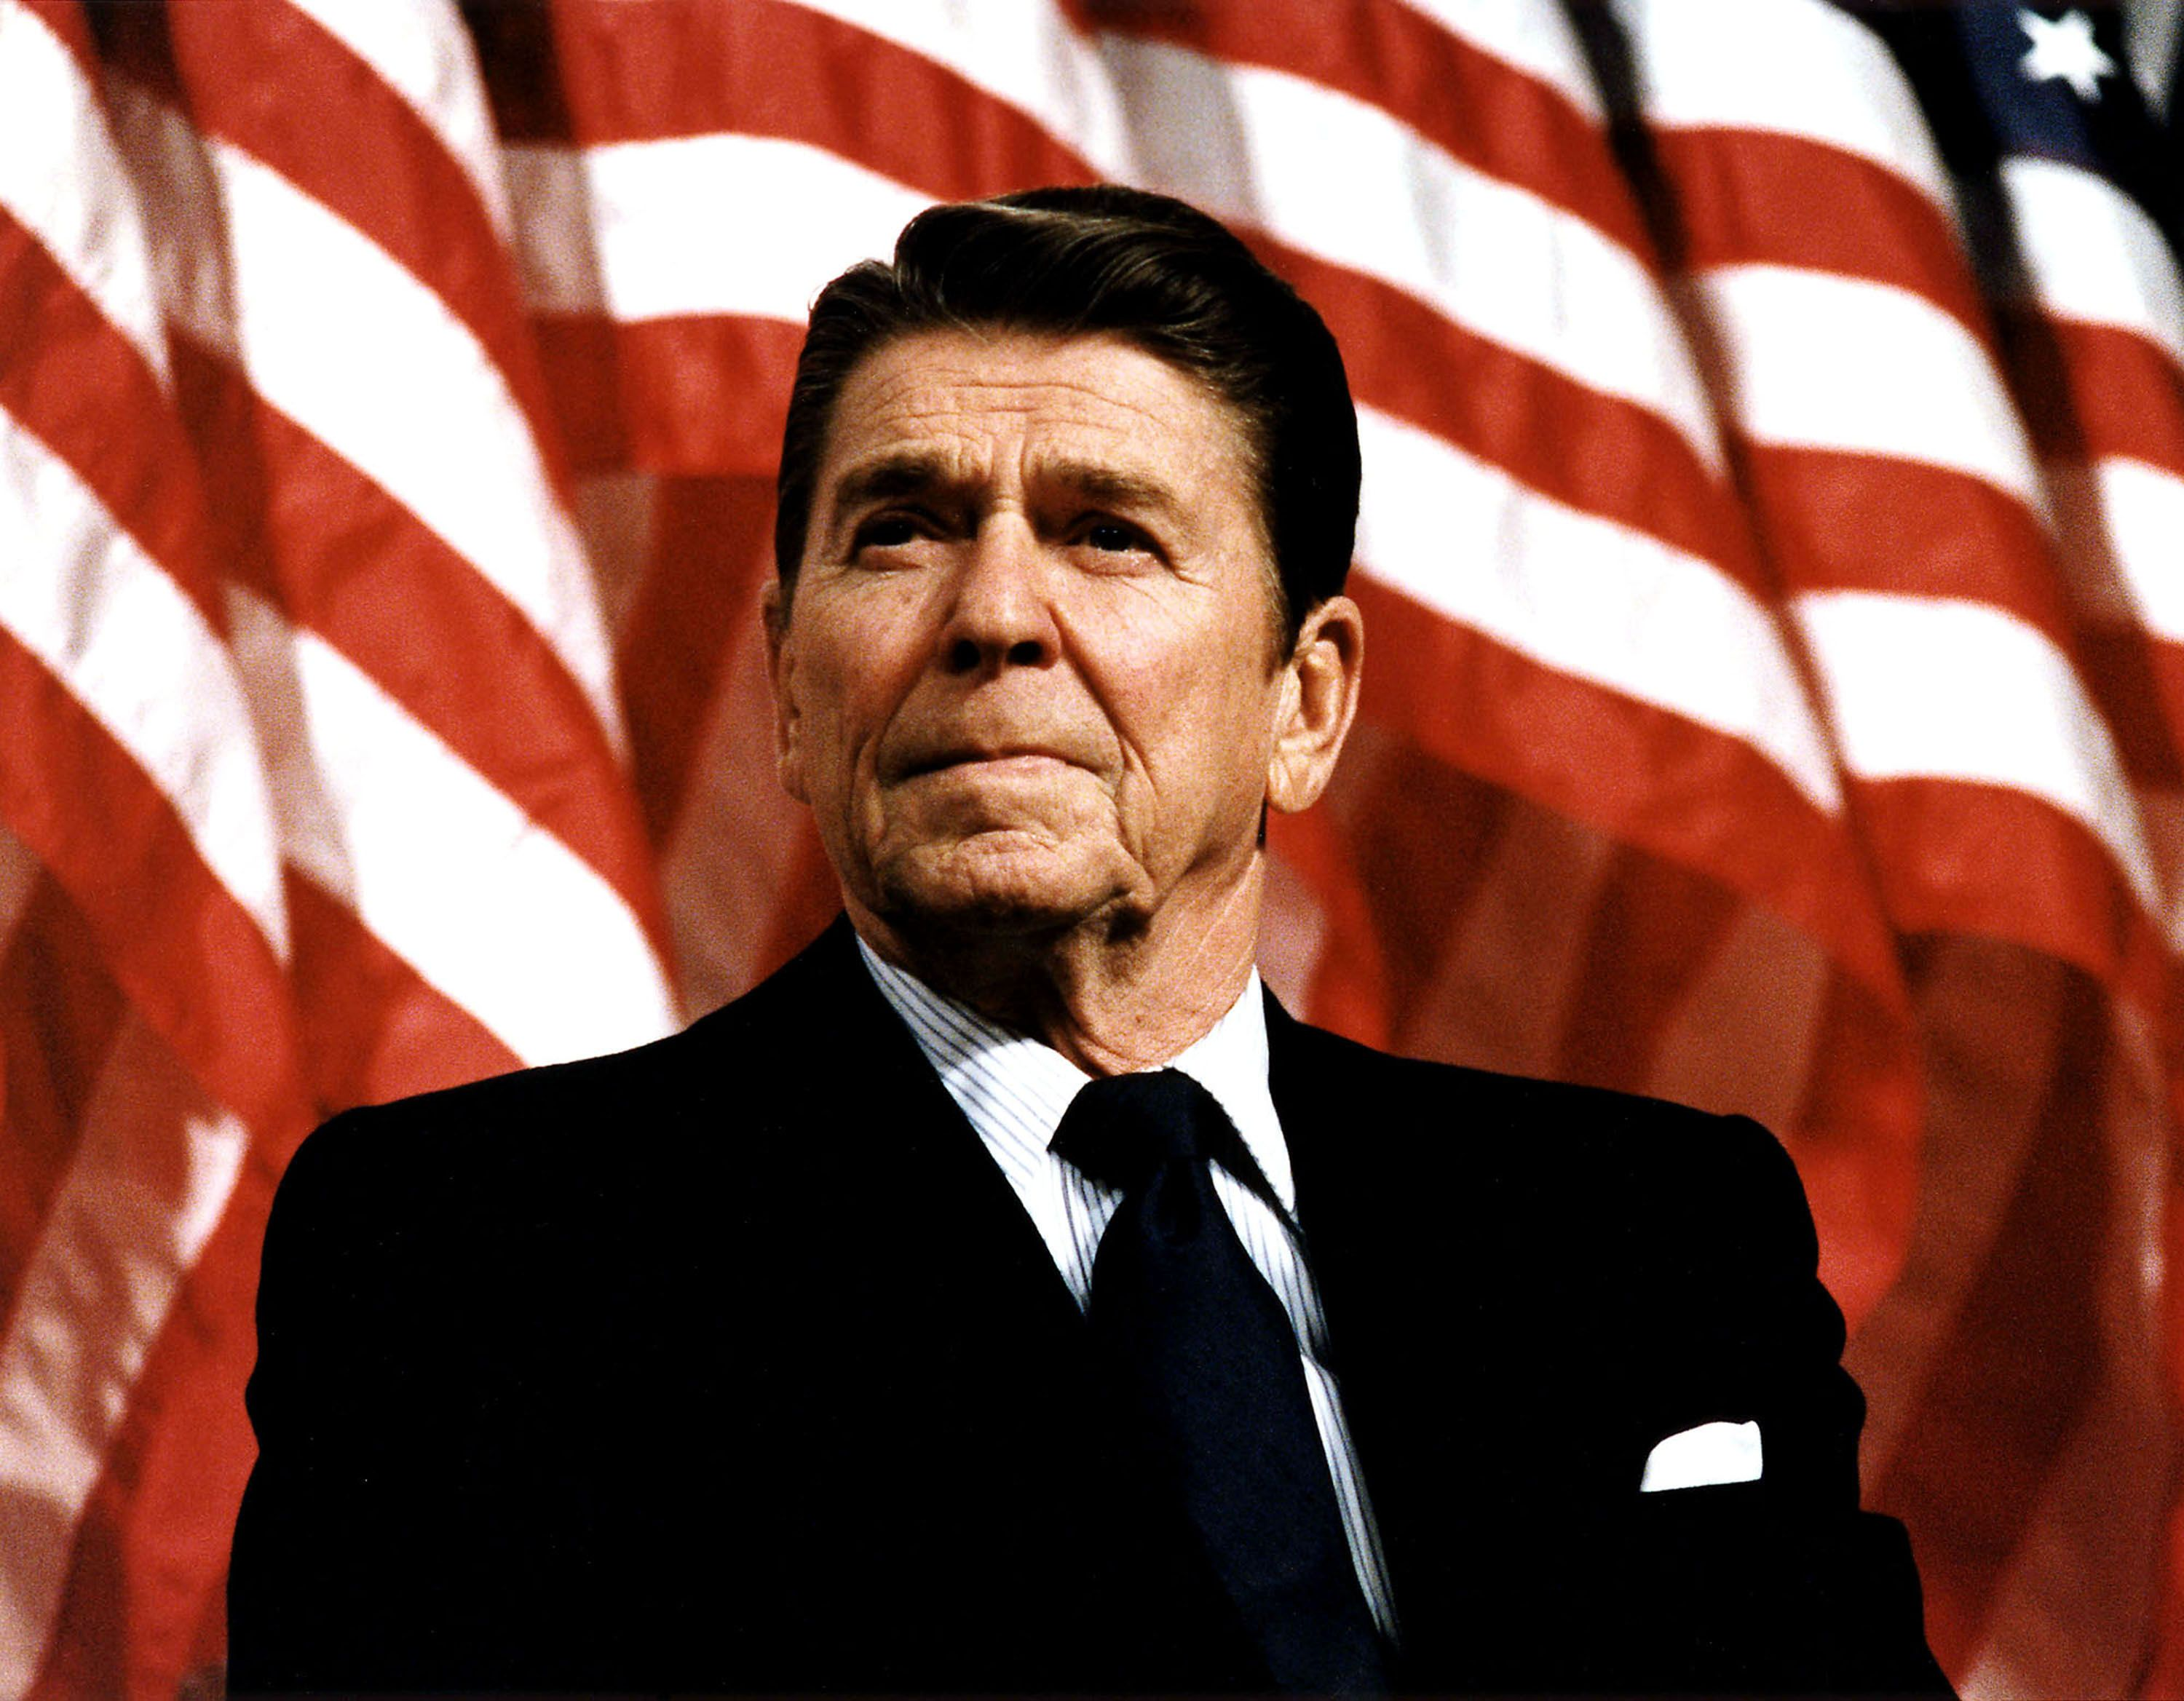 President Ronald Reagan at a rally for Senator Durenberger on February 8, 1982. | Photo: Getty Images